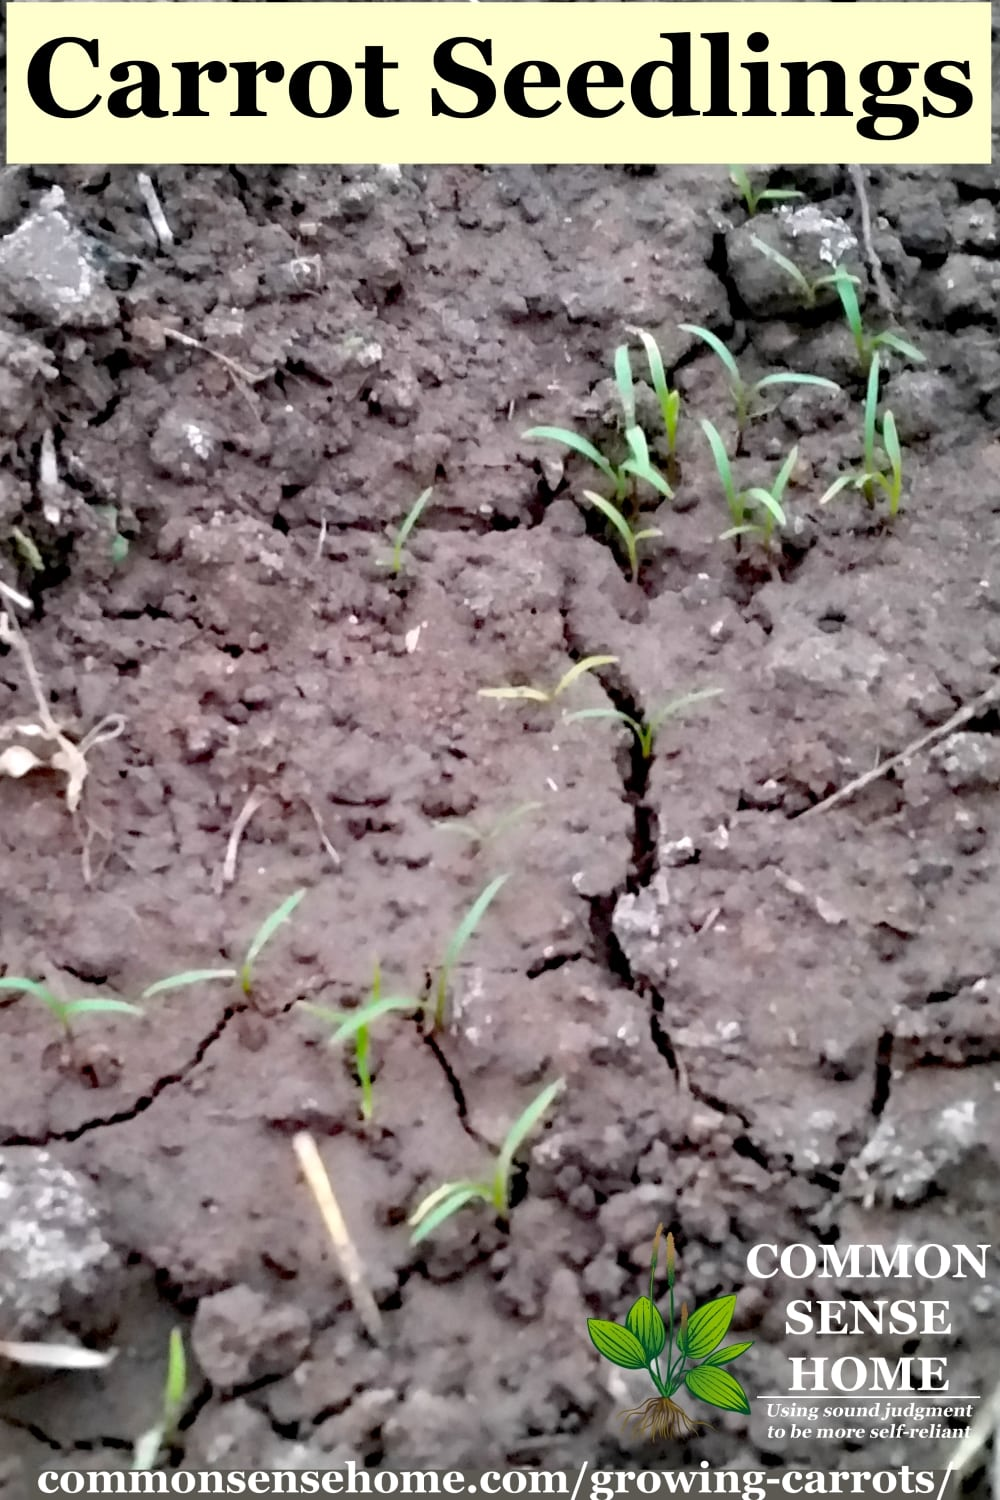 Tiny carrot seedlings in cracked soil